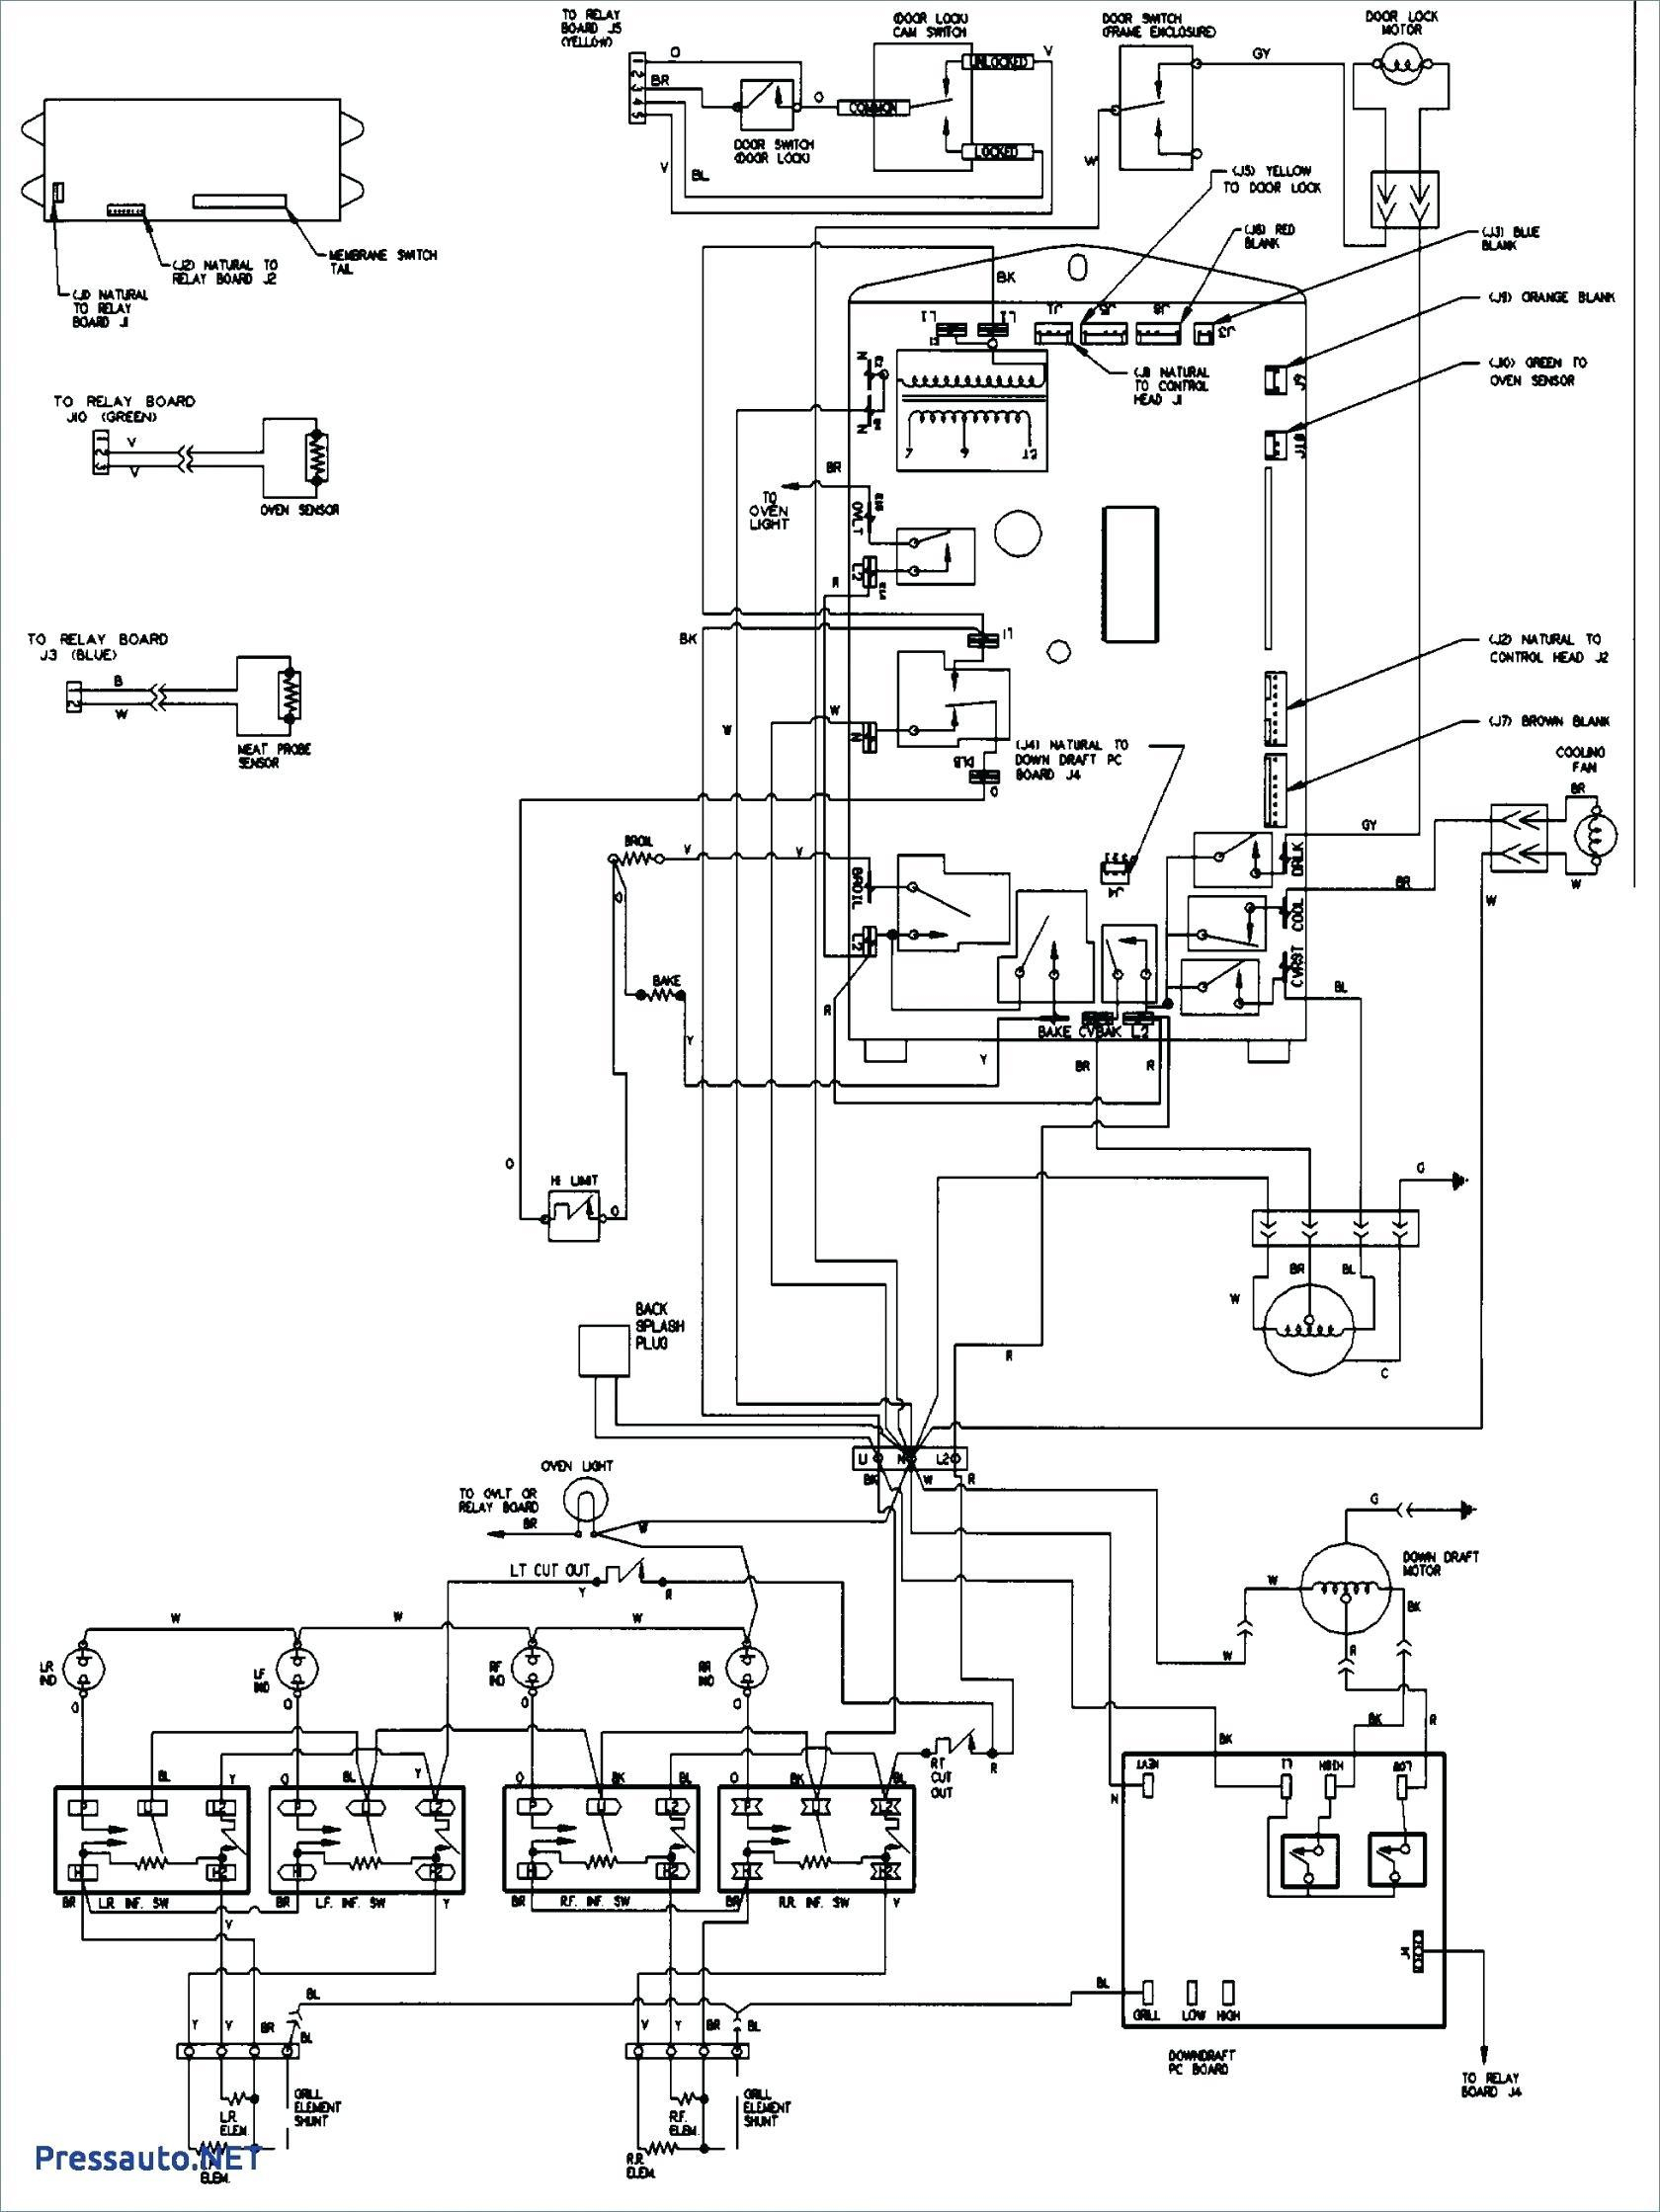 lennox signaturestat wiring diagram Collection-Lennox Ac Thermostat Wiring  Diagram Free Download Wiring Diagram 11. DOWNLOAD. Wiring Diagram ...